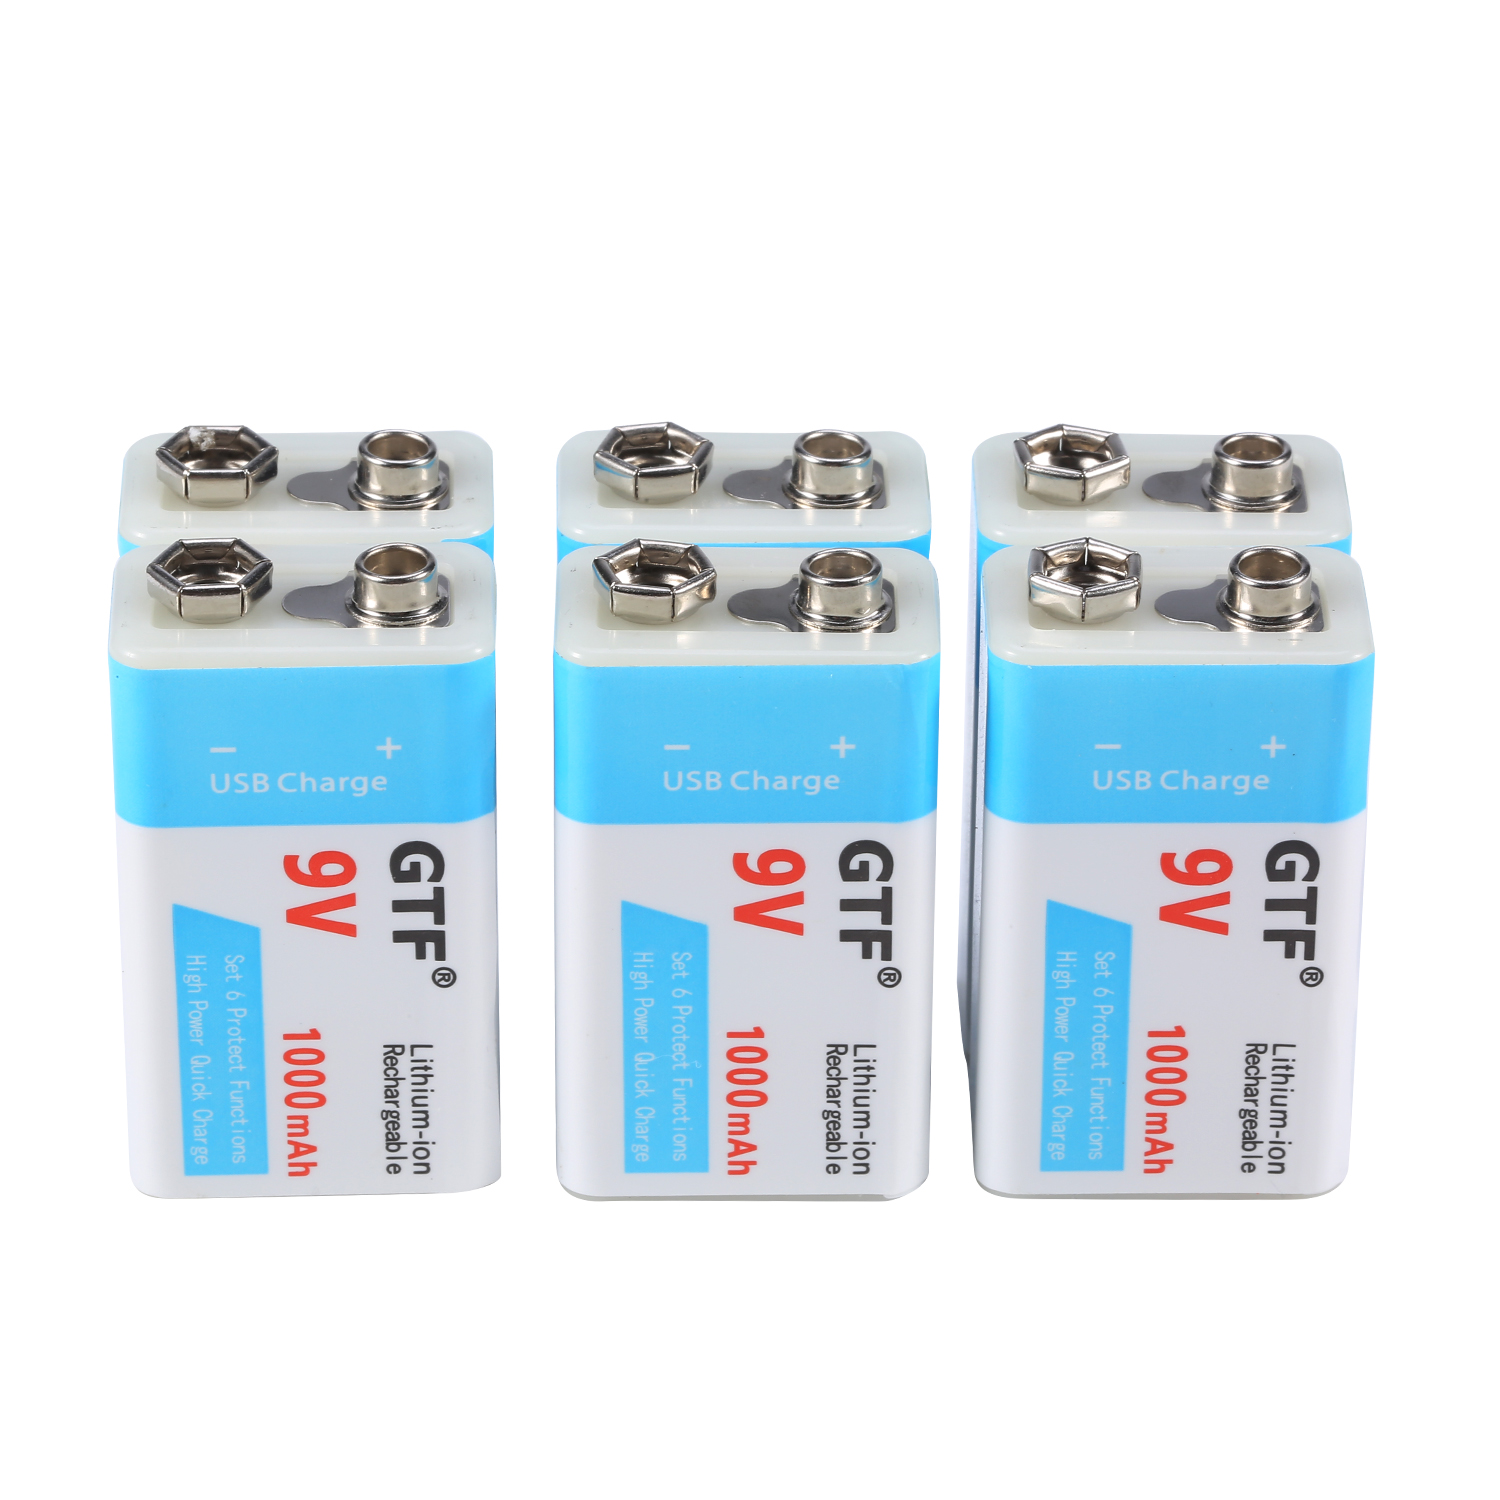 GTF USB Charging 9V 500mAh Li-ion Battery USB Rechargeable Battery 9v Lithium For Multimeter Microphone Toy Remote Control KTV U